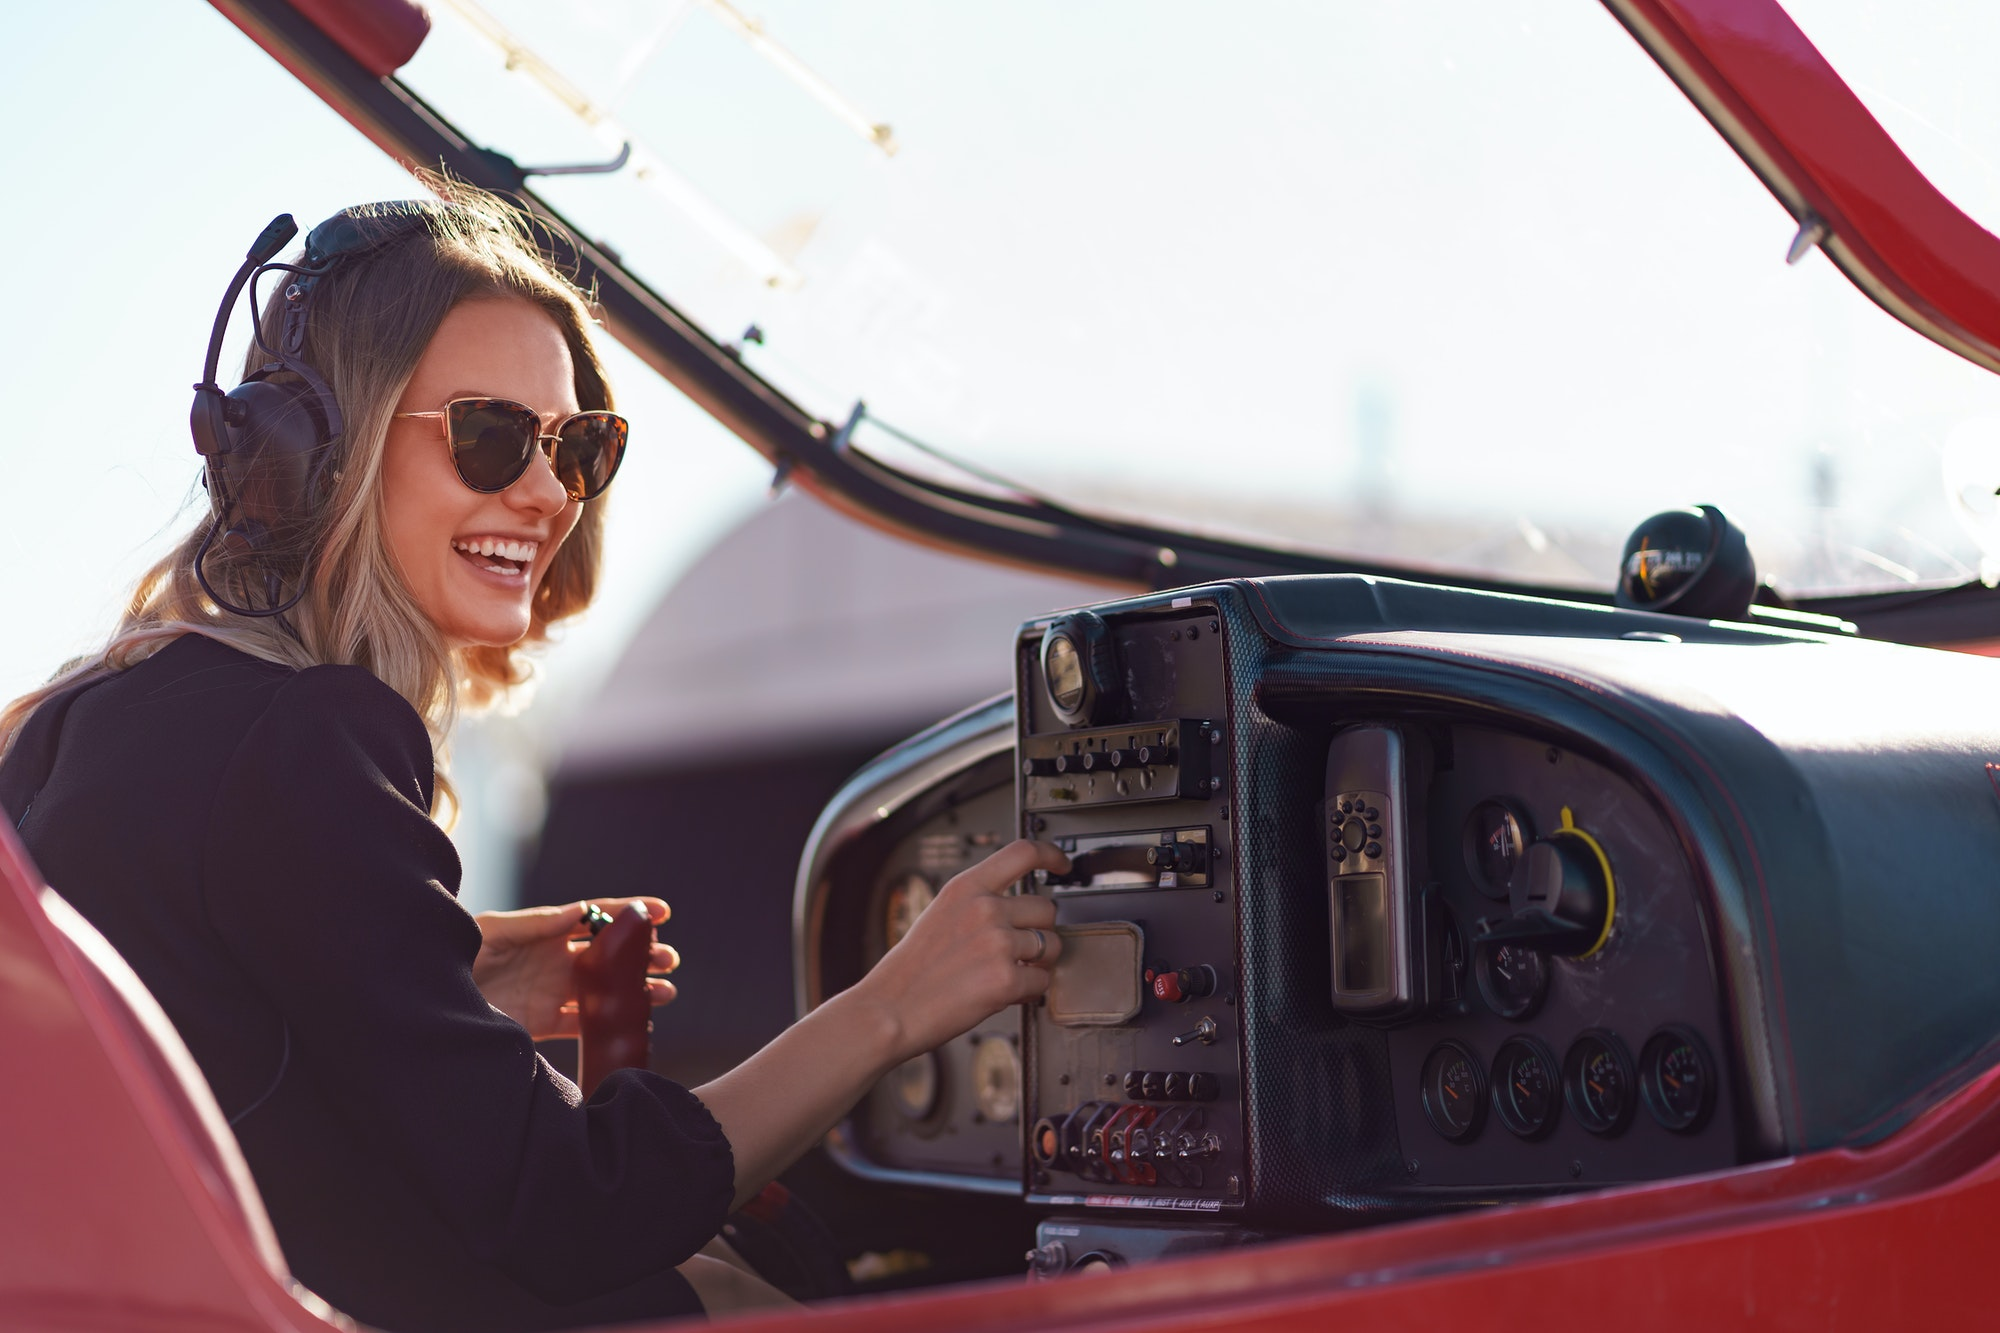 Woman pilot operating on plane flying